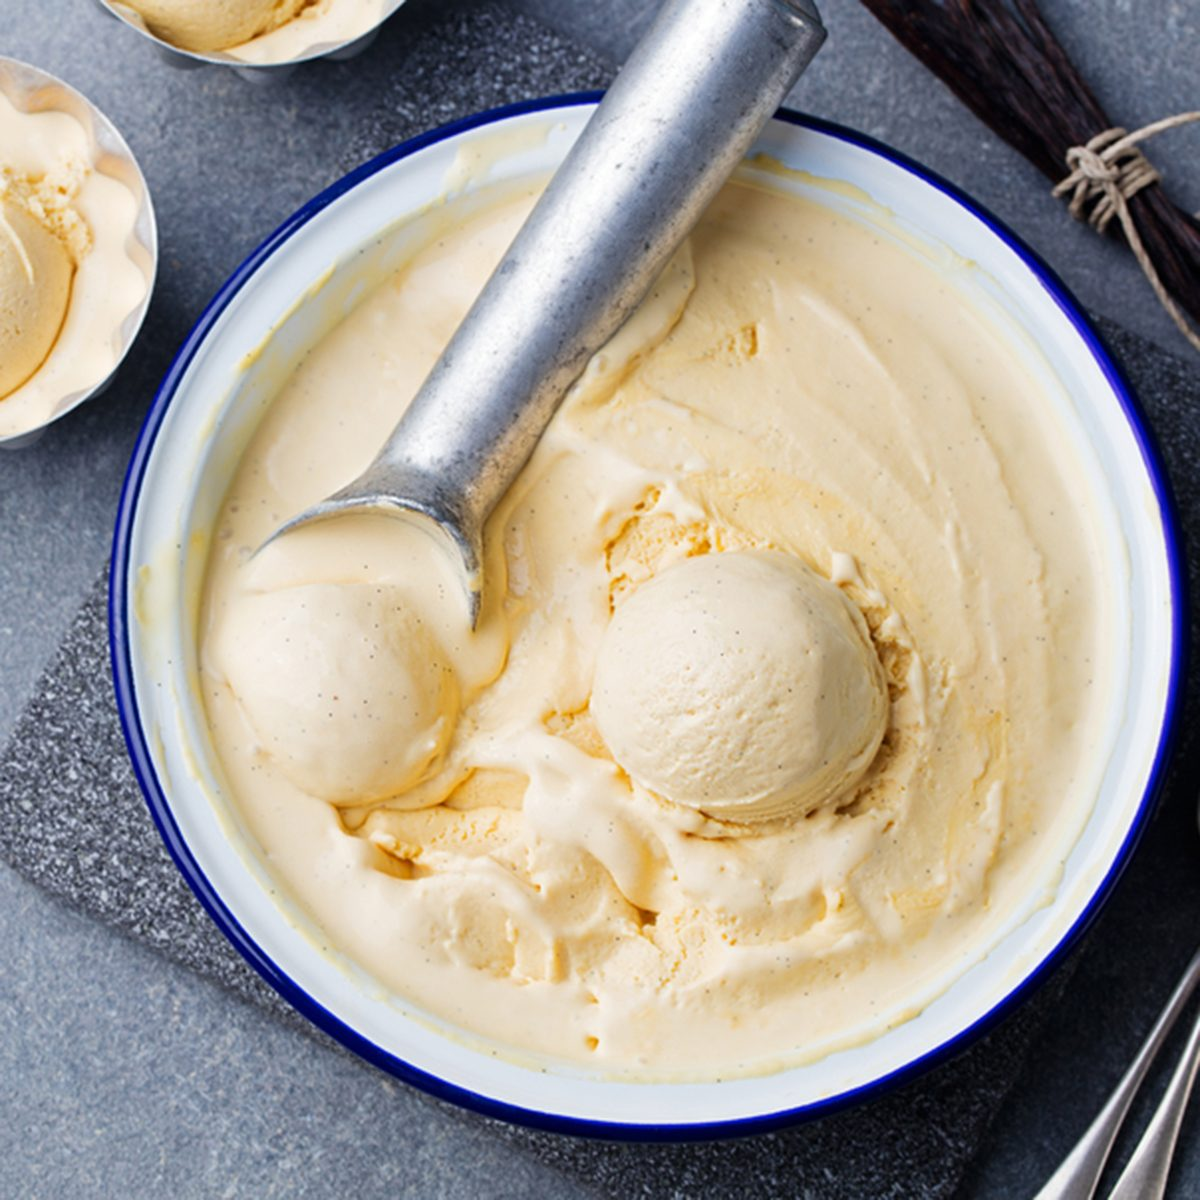 Homemade vanilla, caramel ice cream in vintage bowl Organic product on a grey stone background; Shutterstock ID 413974858; Job (TFH, TOH, RD, BNB, CWM, CM): Taste of Home